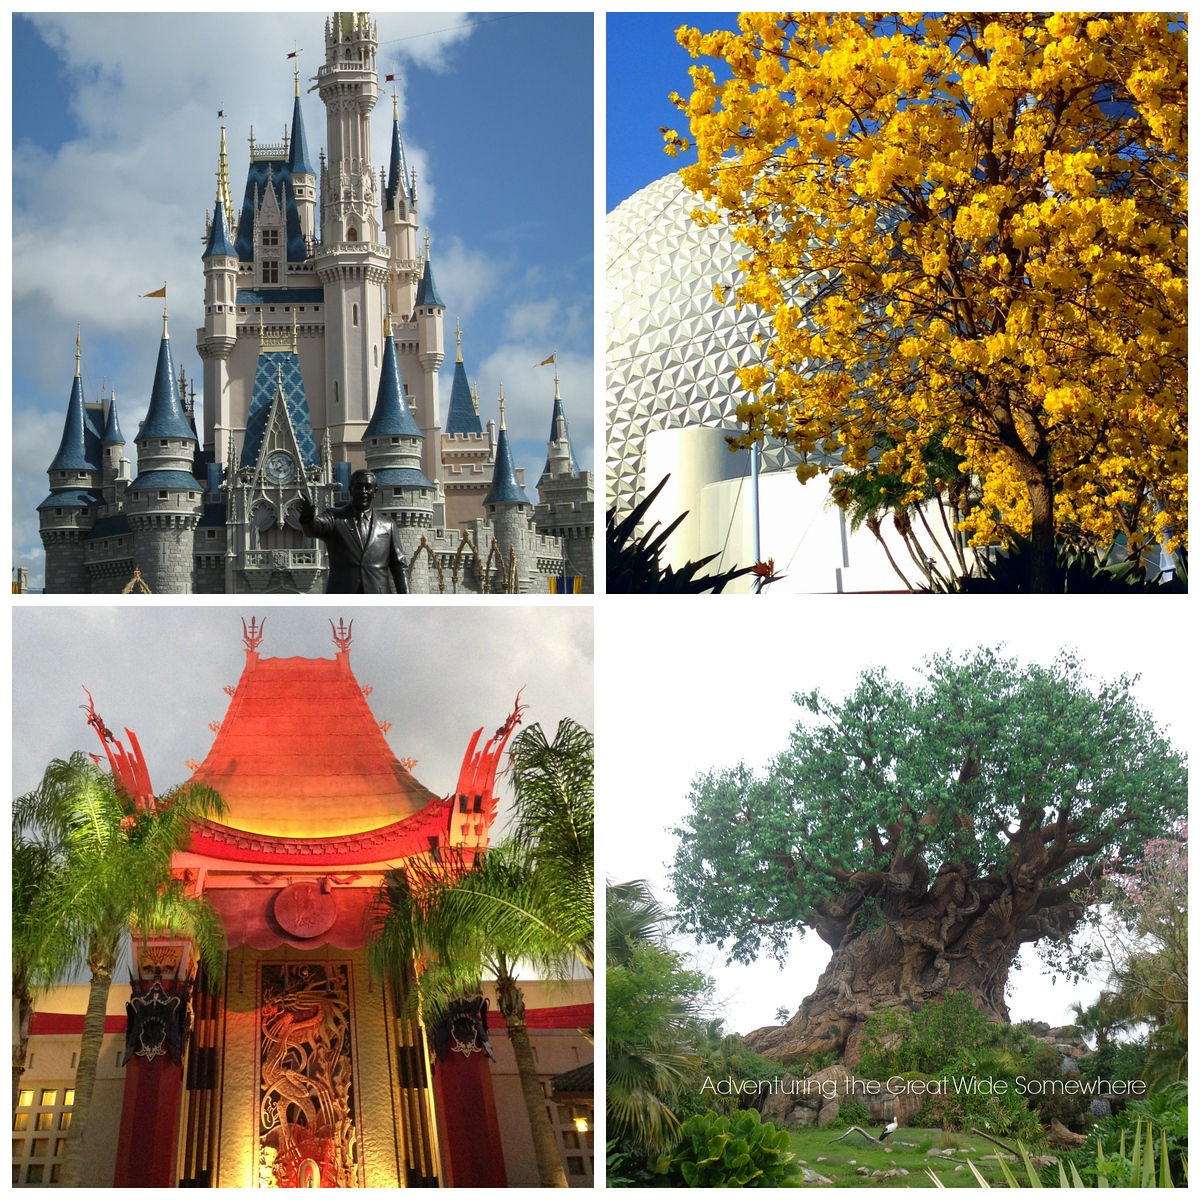 Icons of the Four Walt Disney World Theme Parks - Cinderella Castle, Spaceship Earth, the Great Movie Ride, and the Tree of Life